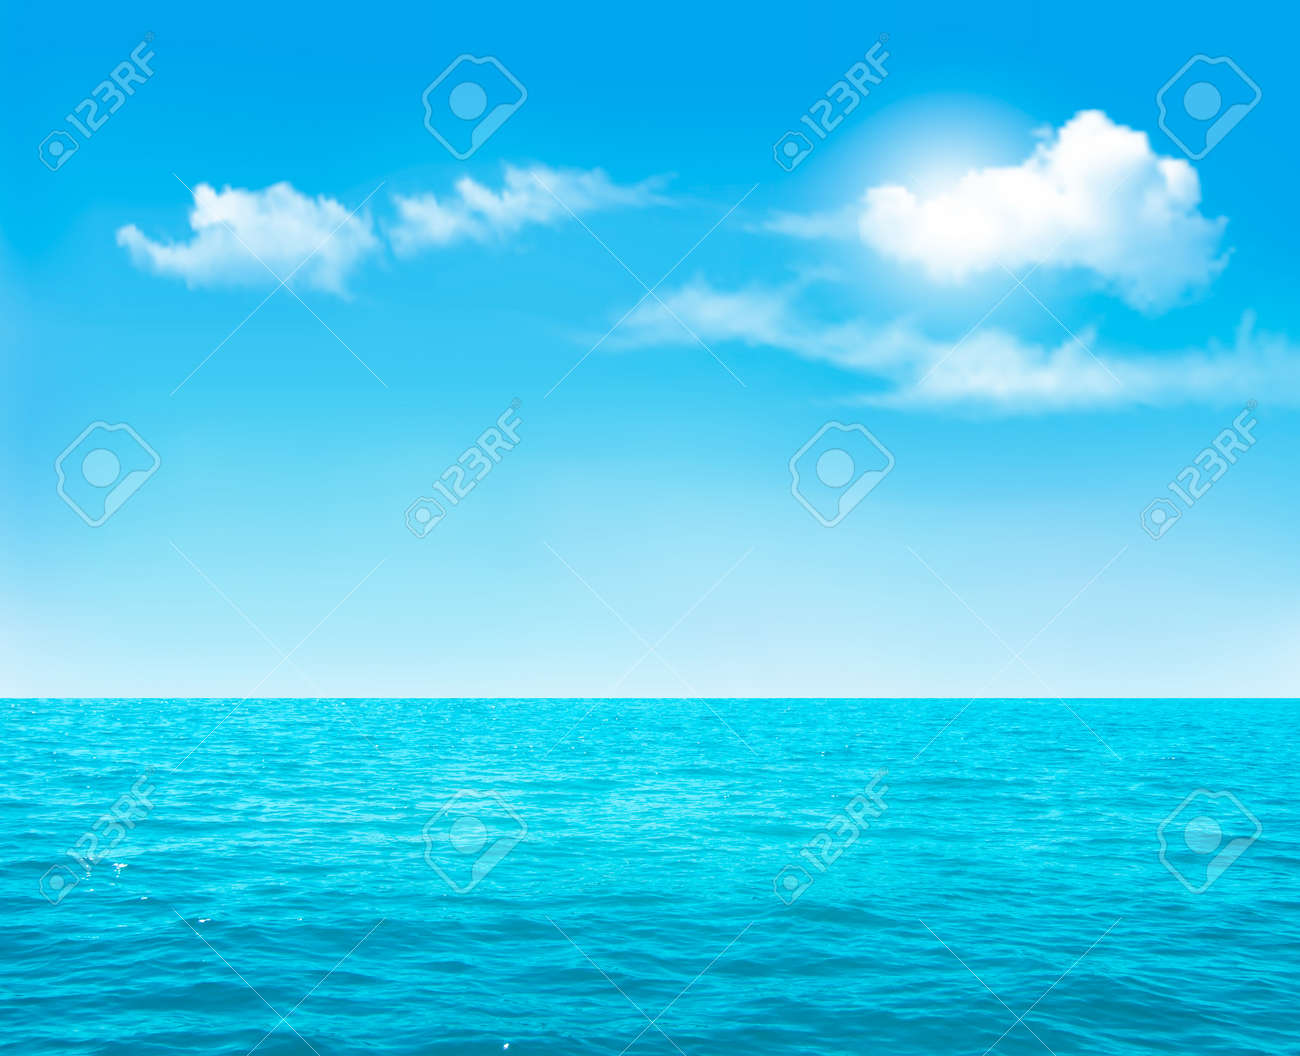 Nature background - blue ocean and blue cloudy sky. Vector. - 39536344